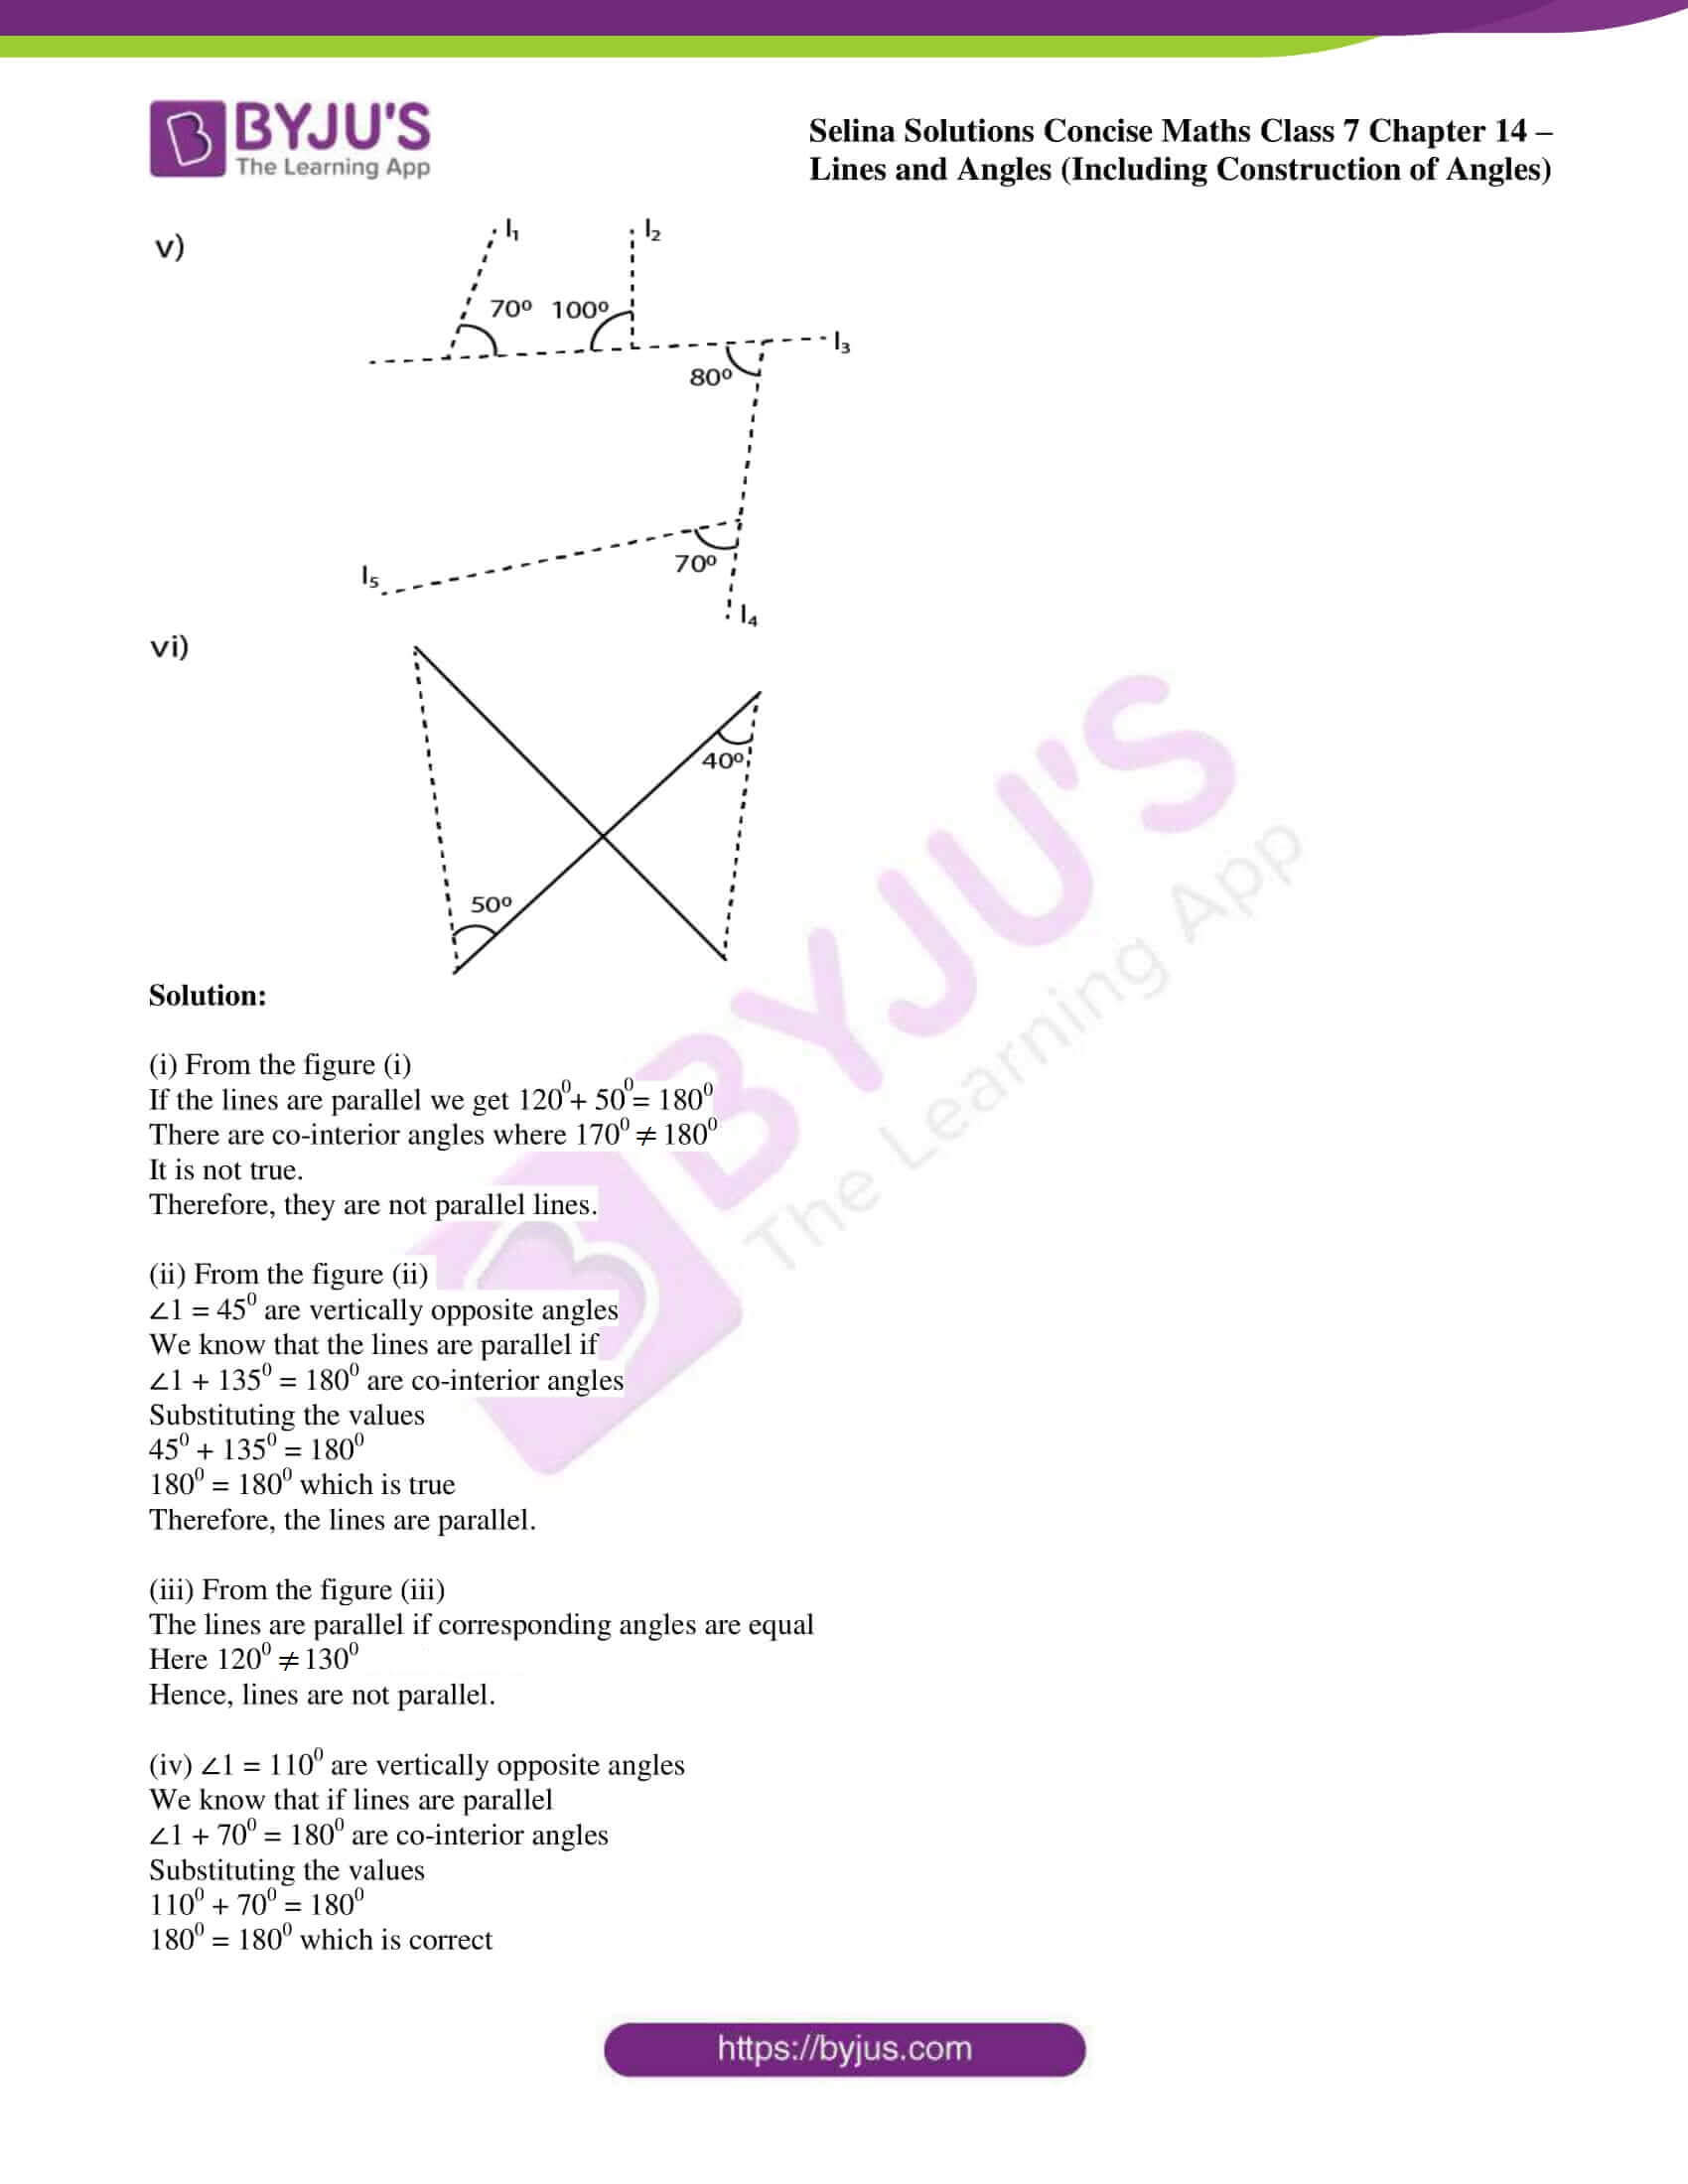 selina solution concise maths class 7 ch 14b 05